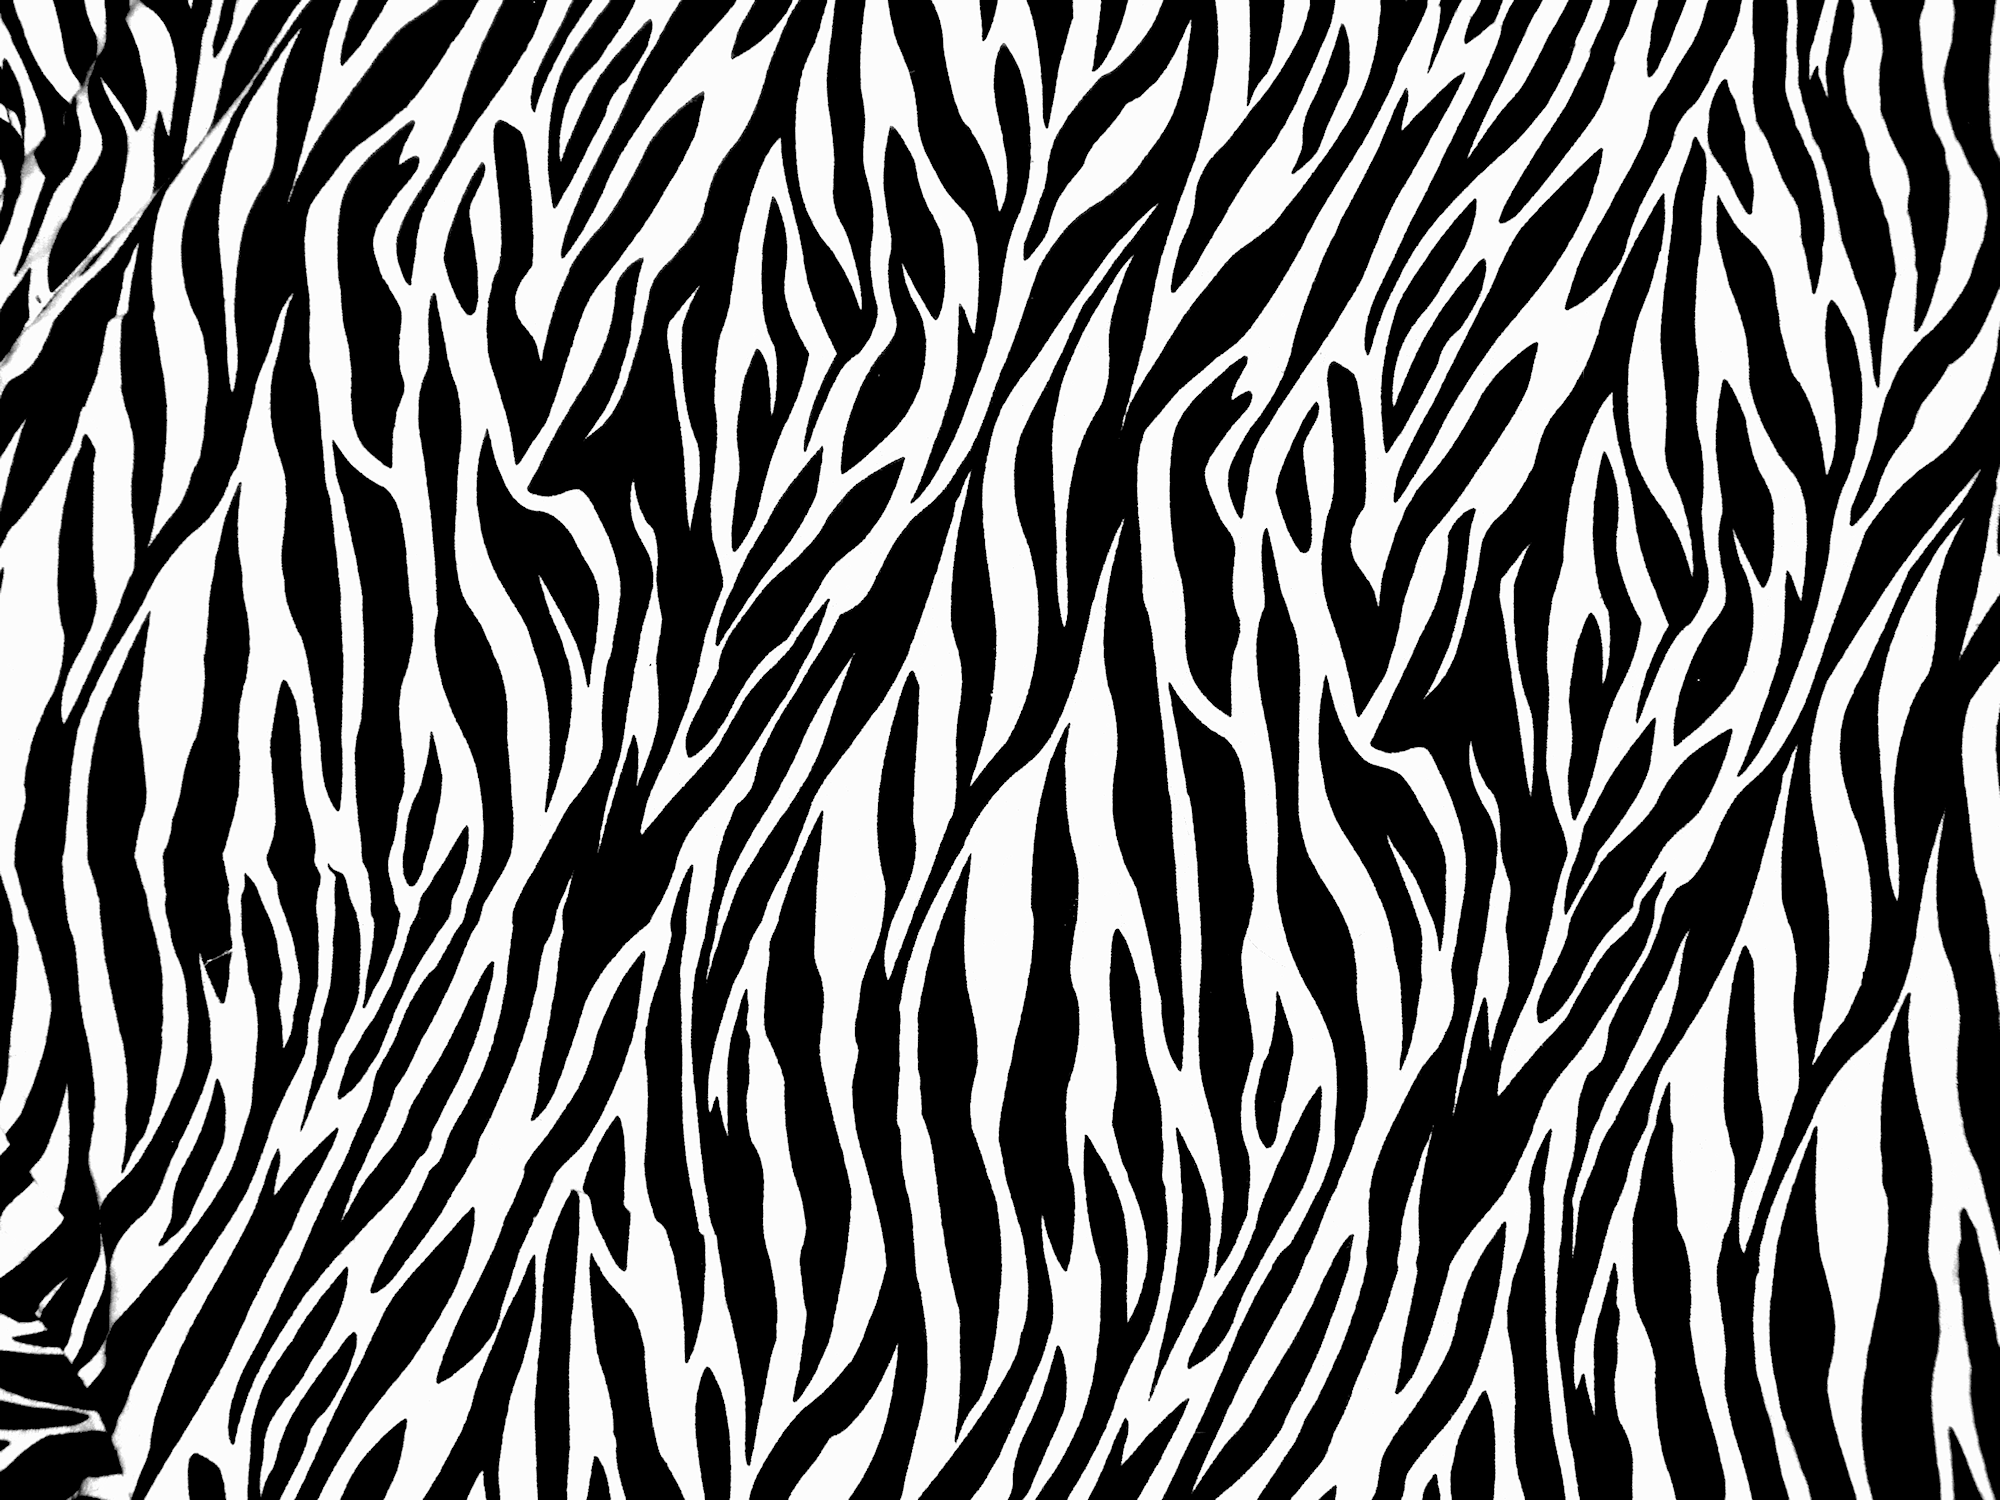 also thinking of blue zebra or Green Zebra